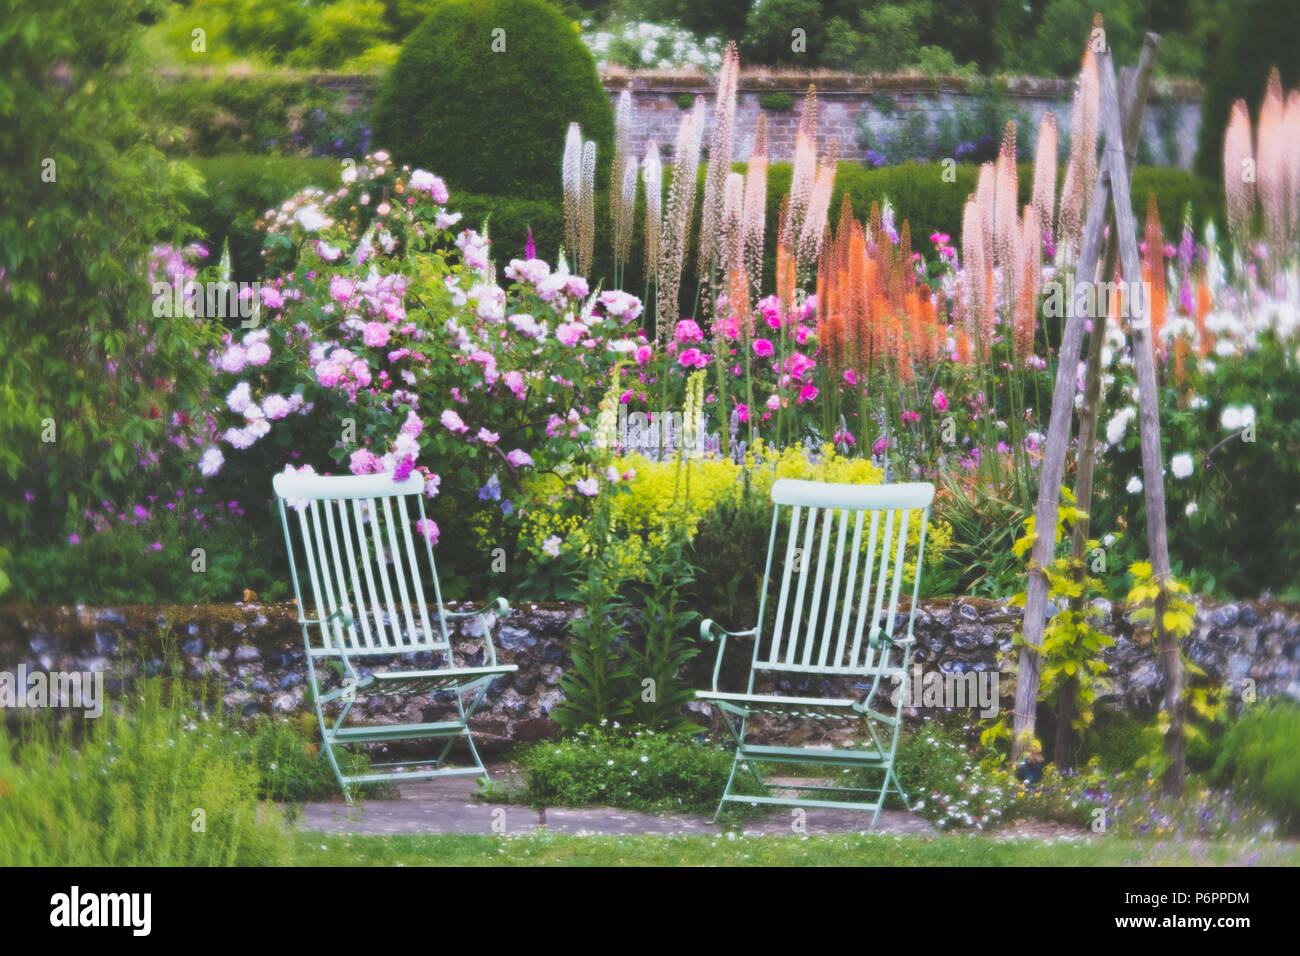 Chairs in the Garden in Summer with Diffuse Effect - Stock Image